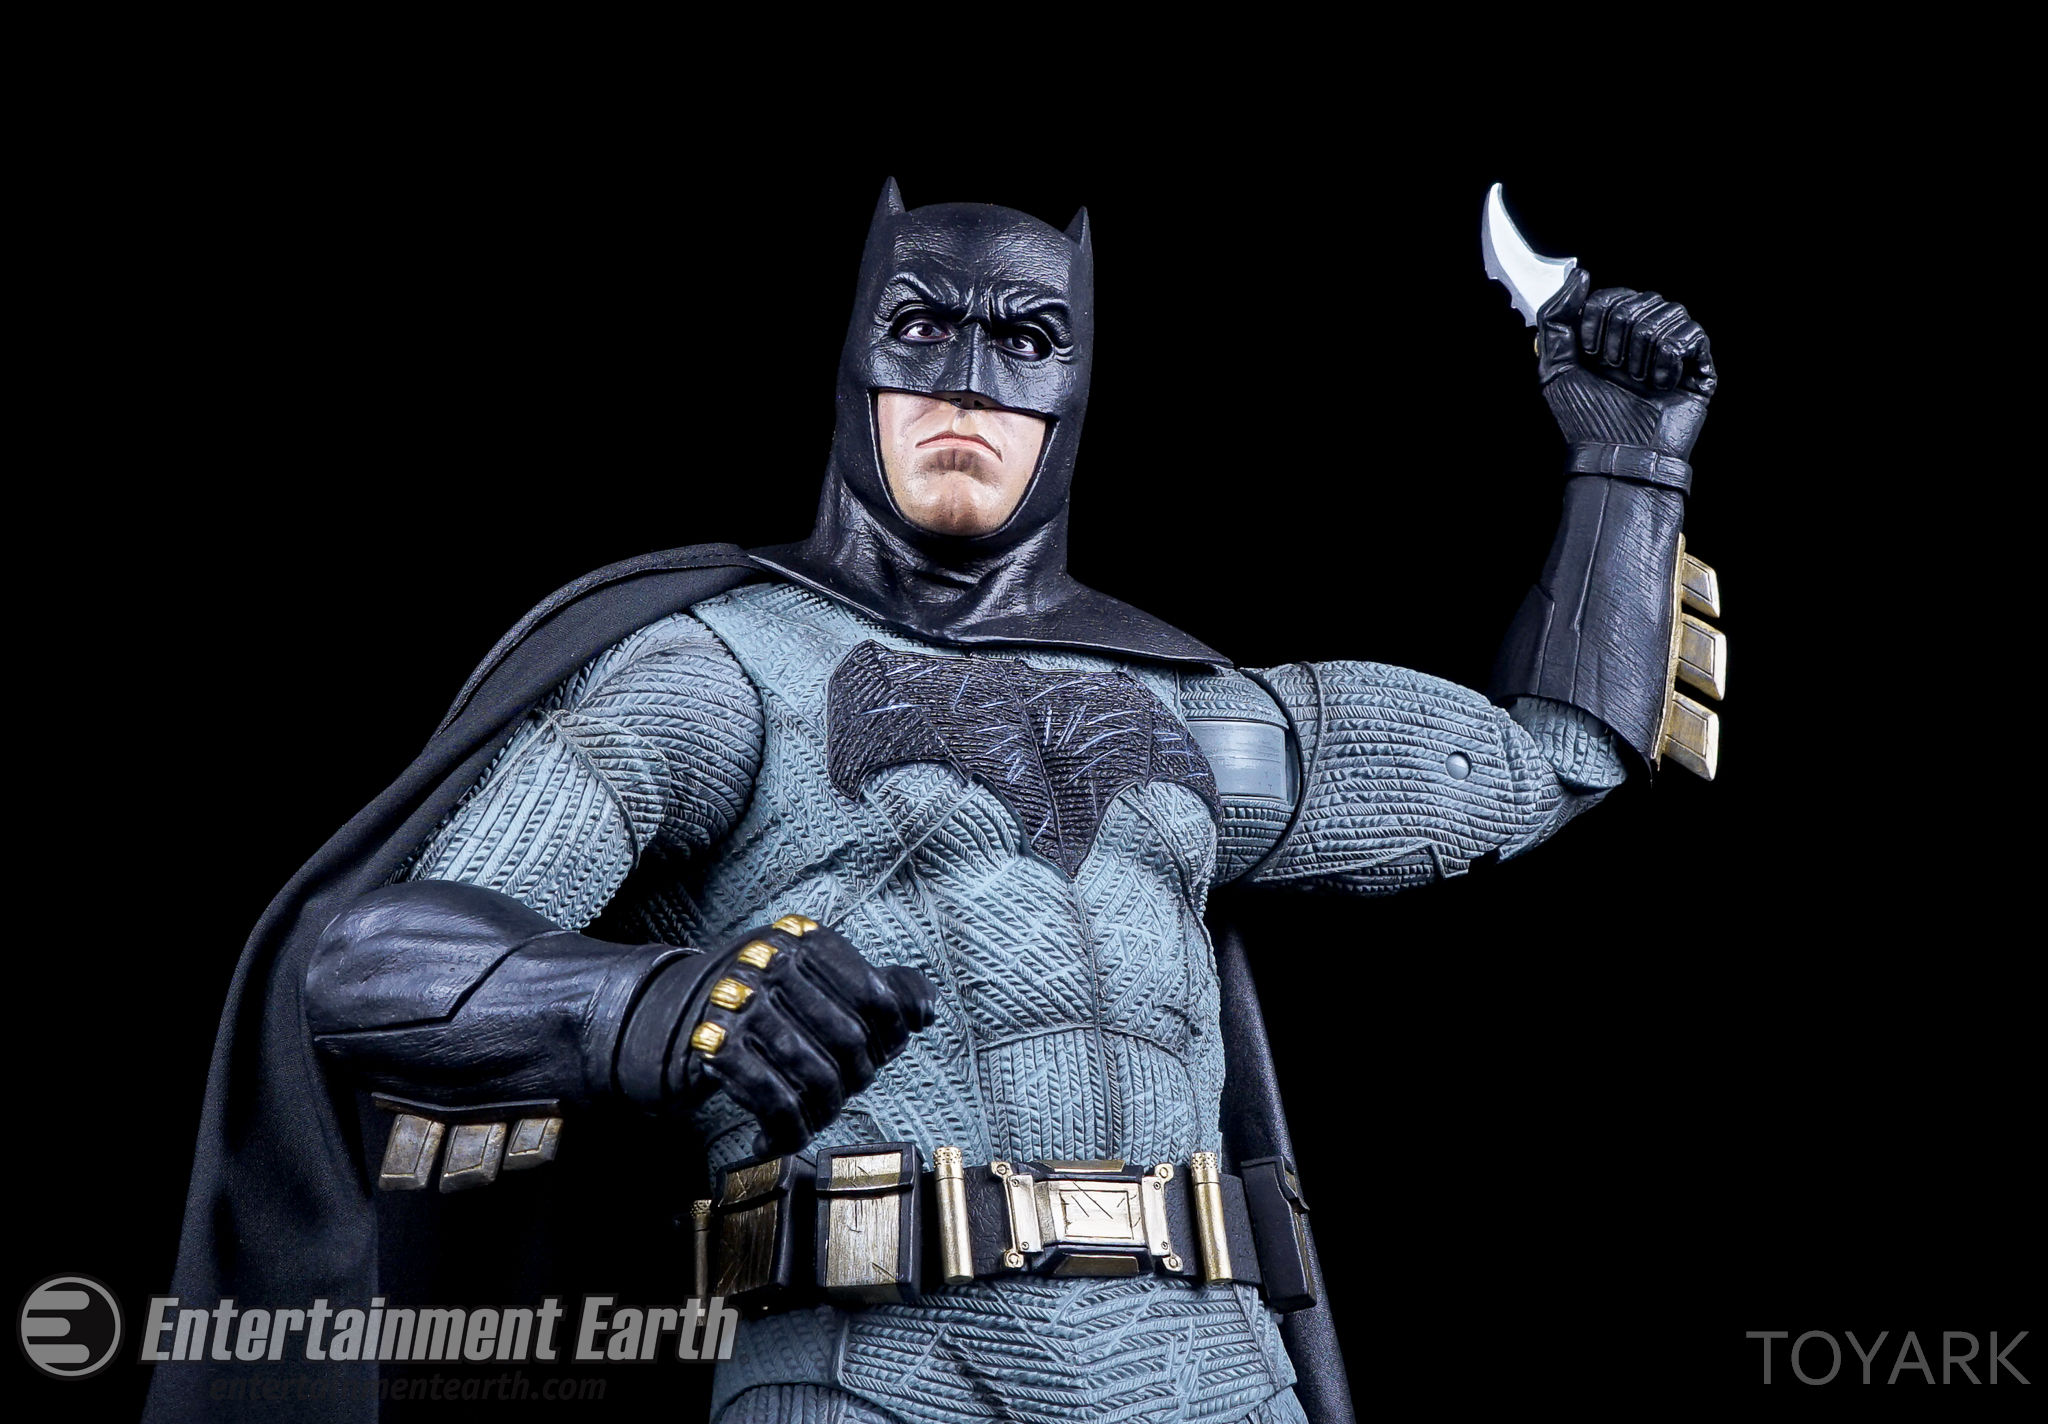 http://news.toyark.com/wp-content/uploads/sites/4/2016/06/NECA-BvS-Quarter-Scale-Batman-038.jpg